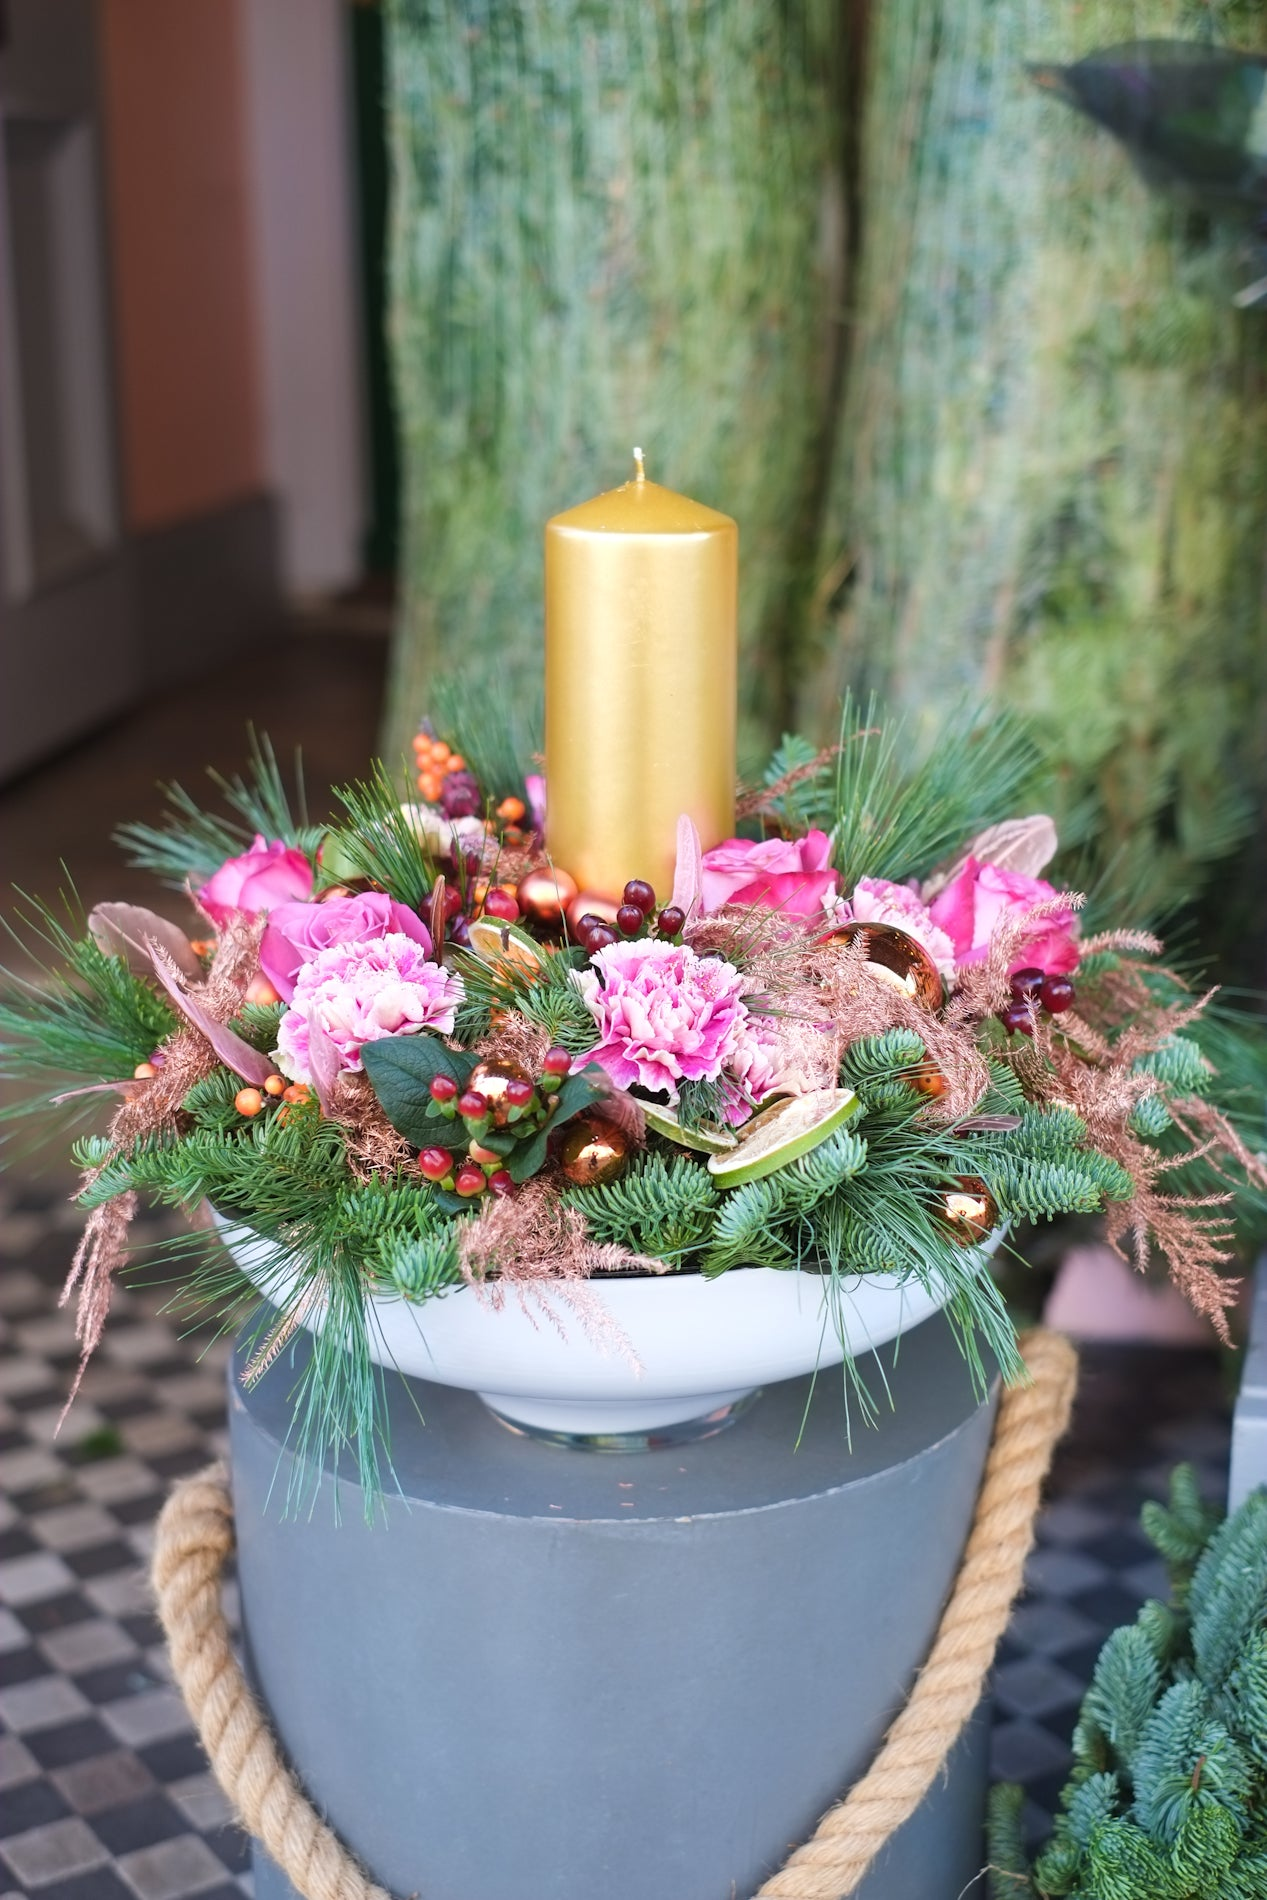 Round Candled Centerpiece